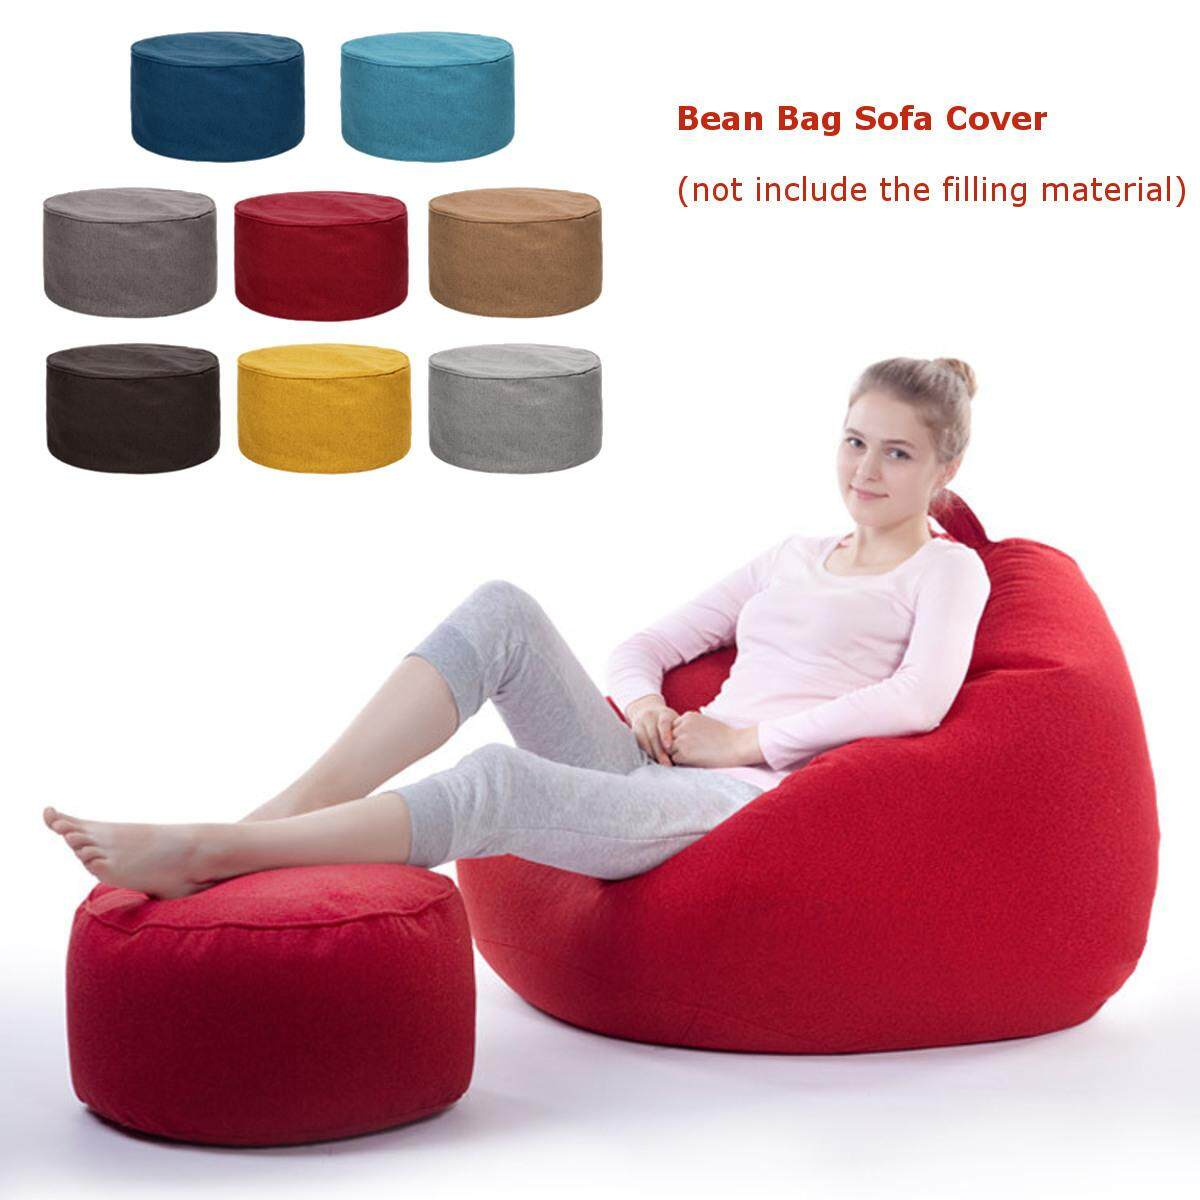 Latest Solid Color Cotton Soft Bean Bags Sofa Lounger Cover Washable Without Filler